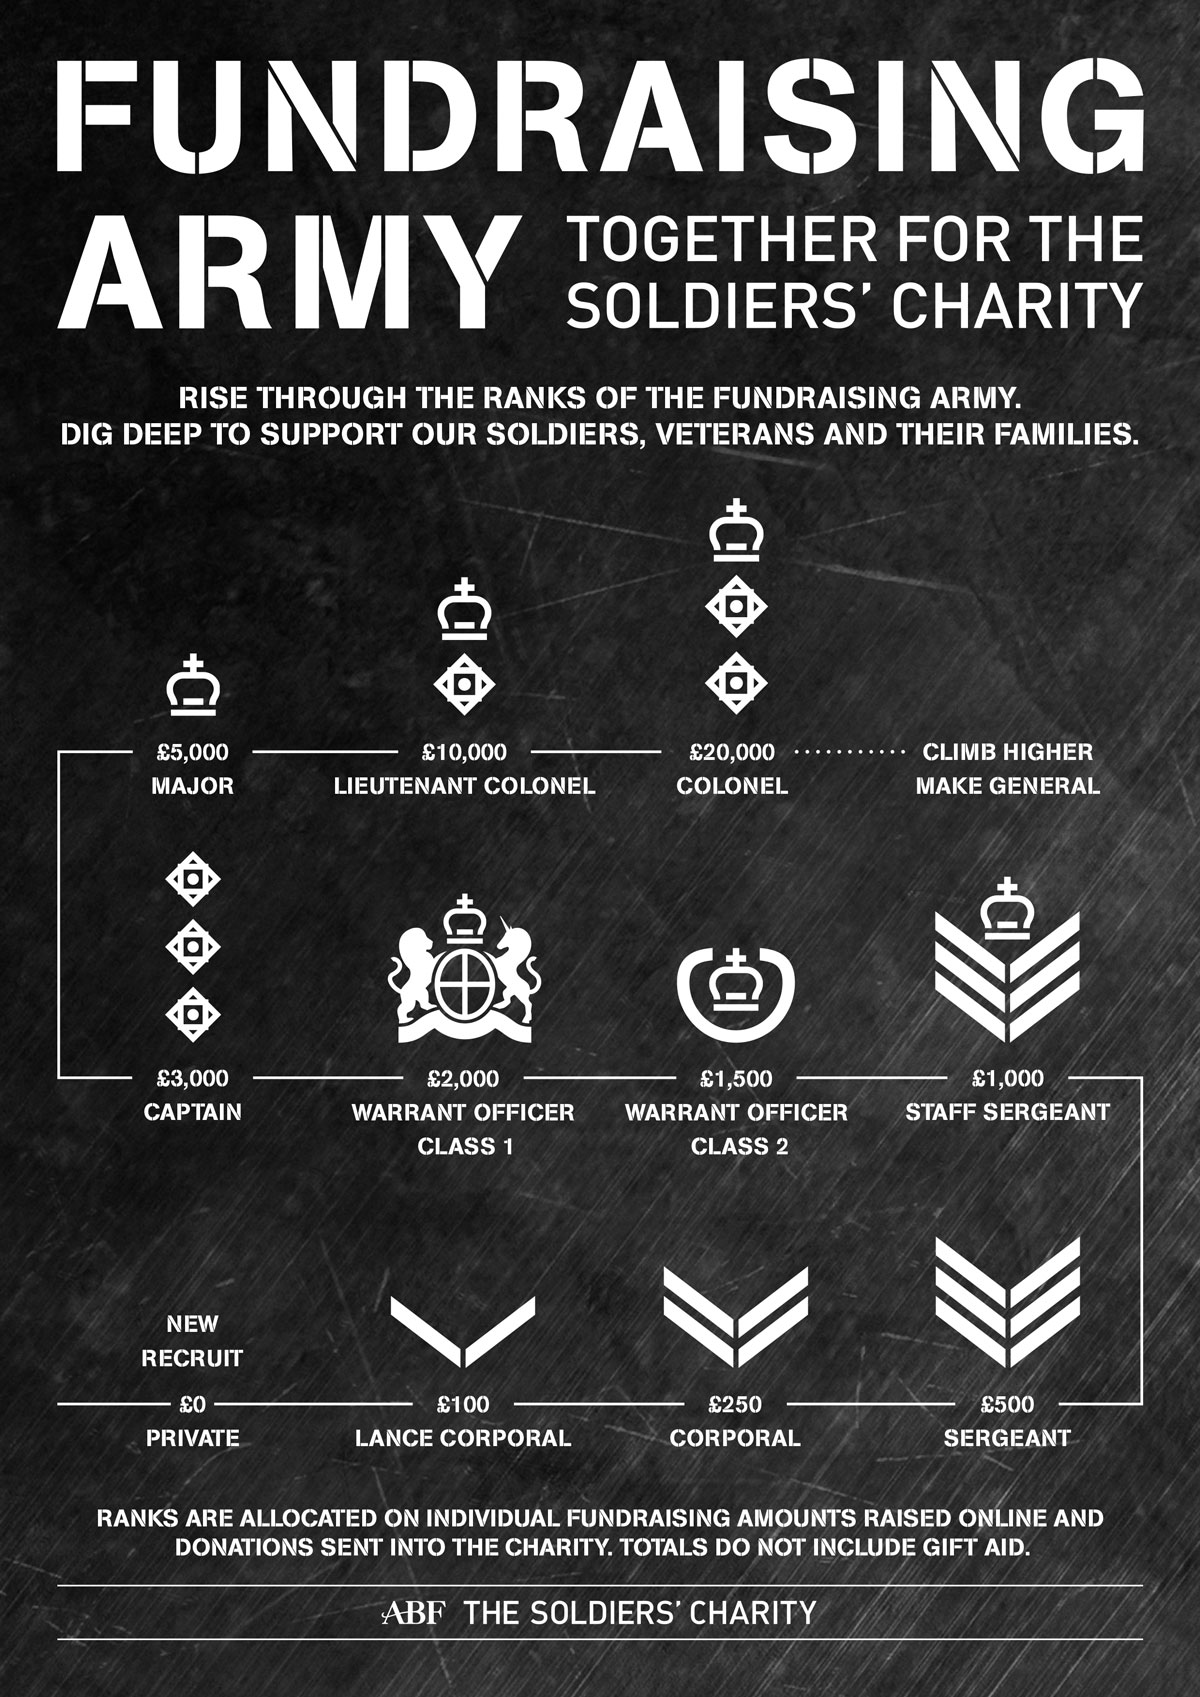 Fundraising Army Ranks